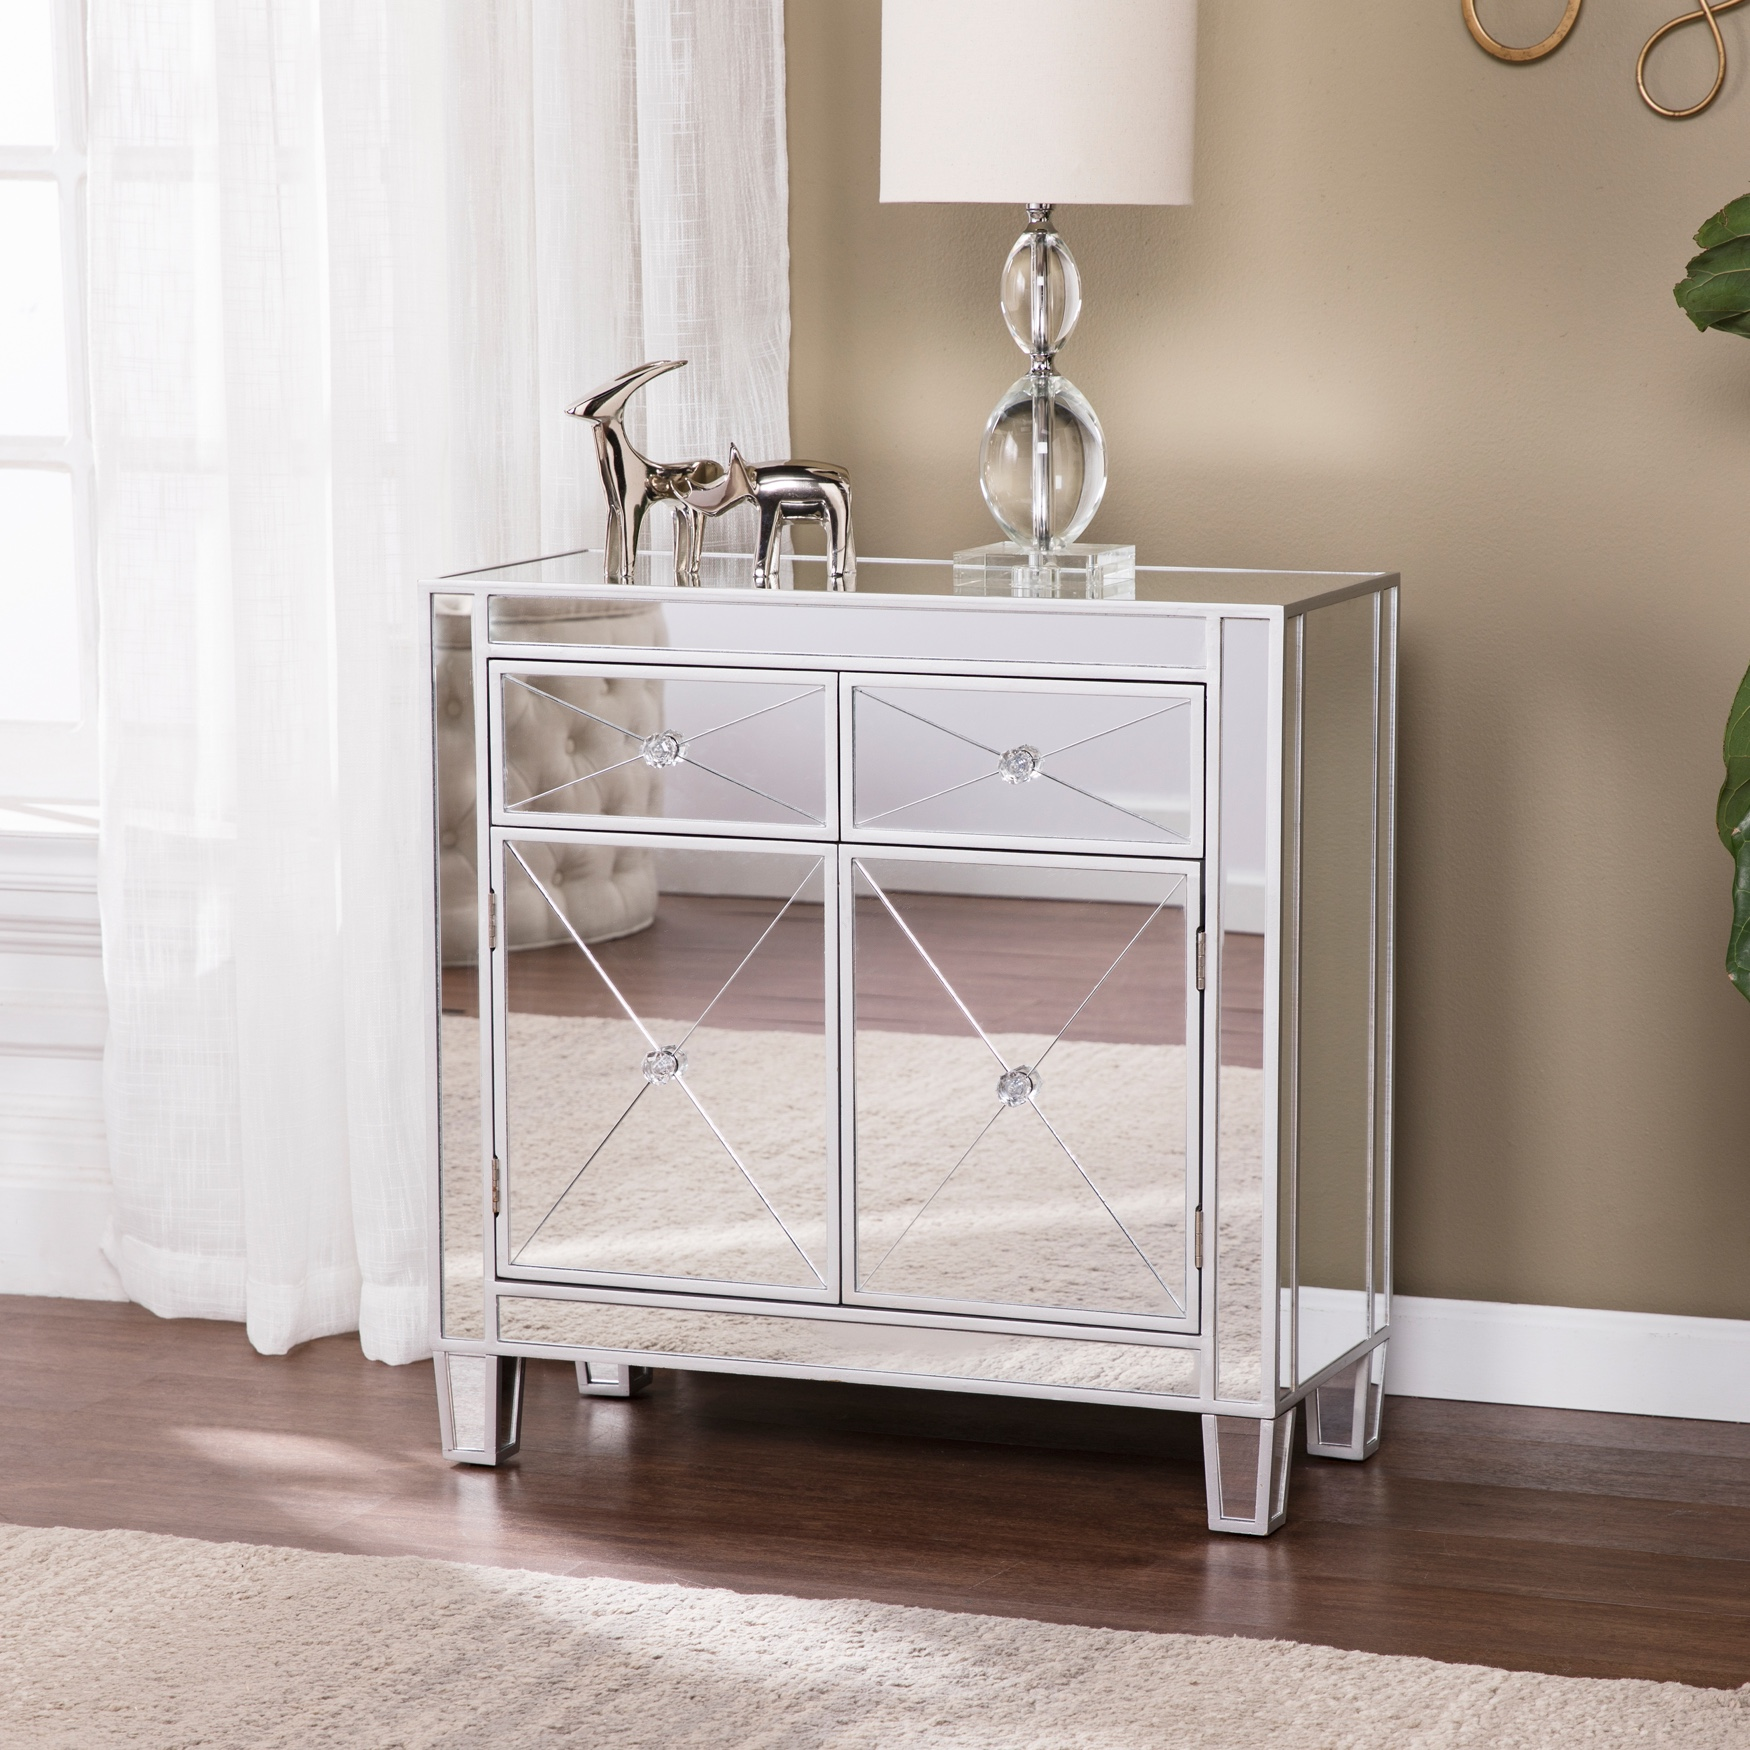 Mirage Mirrored Cabinet, SILVER